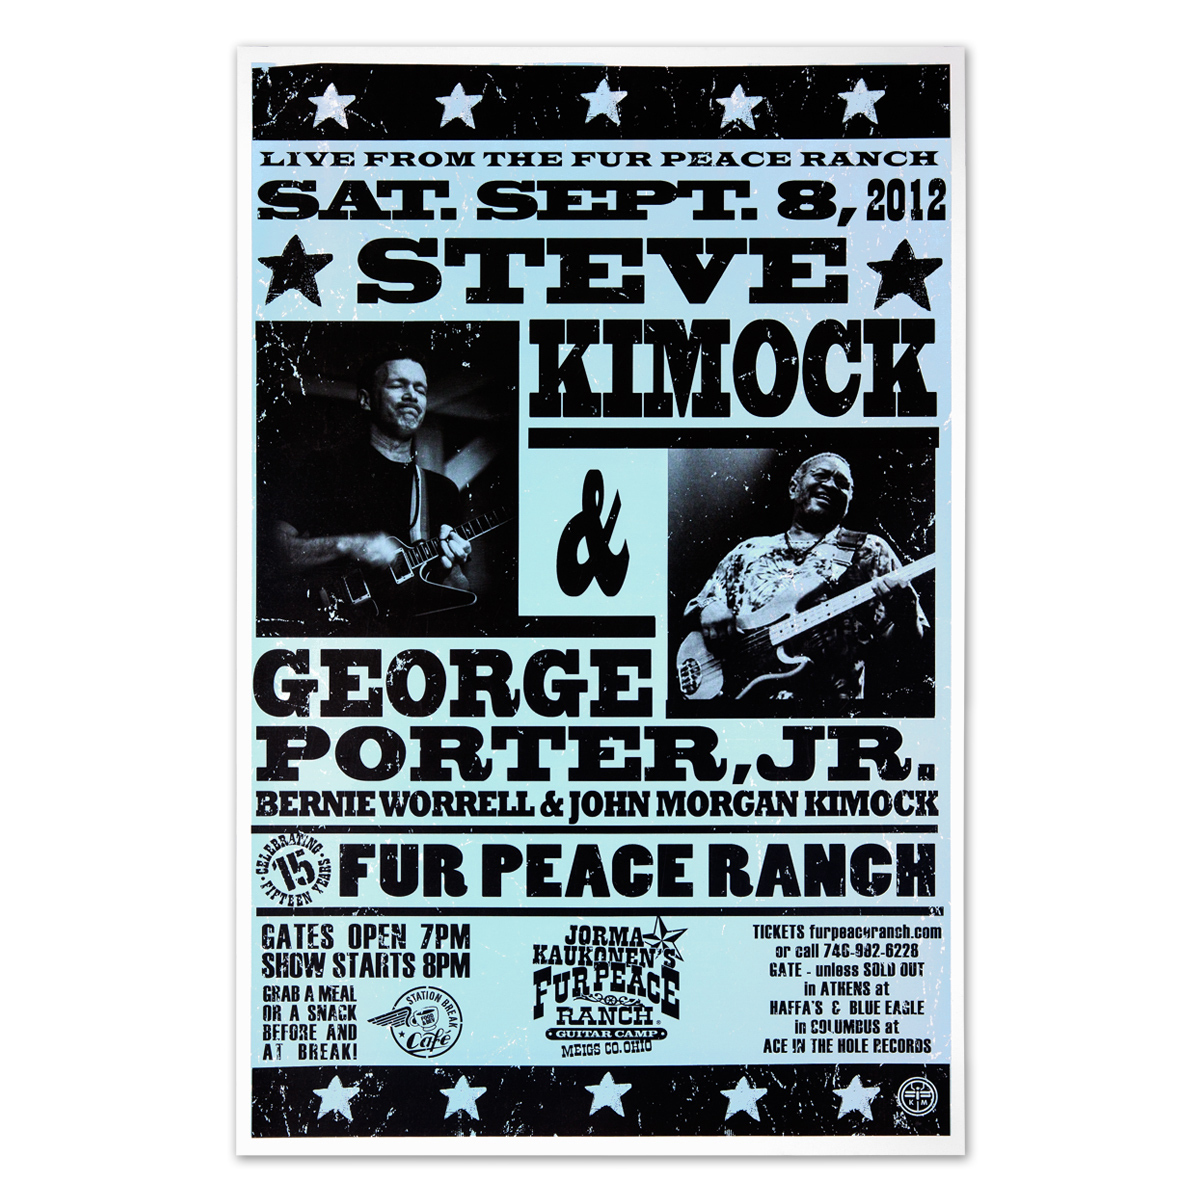 Steve Kimock Live from the Fur Peace Ranch 9/08/12 Poster